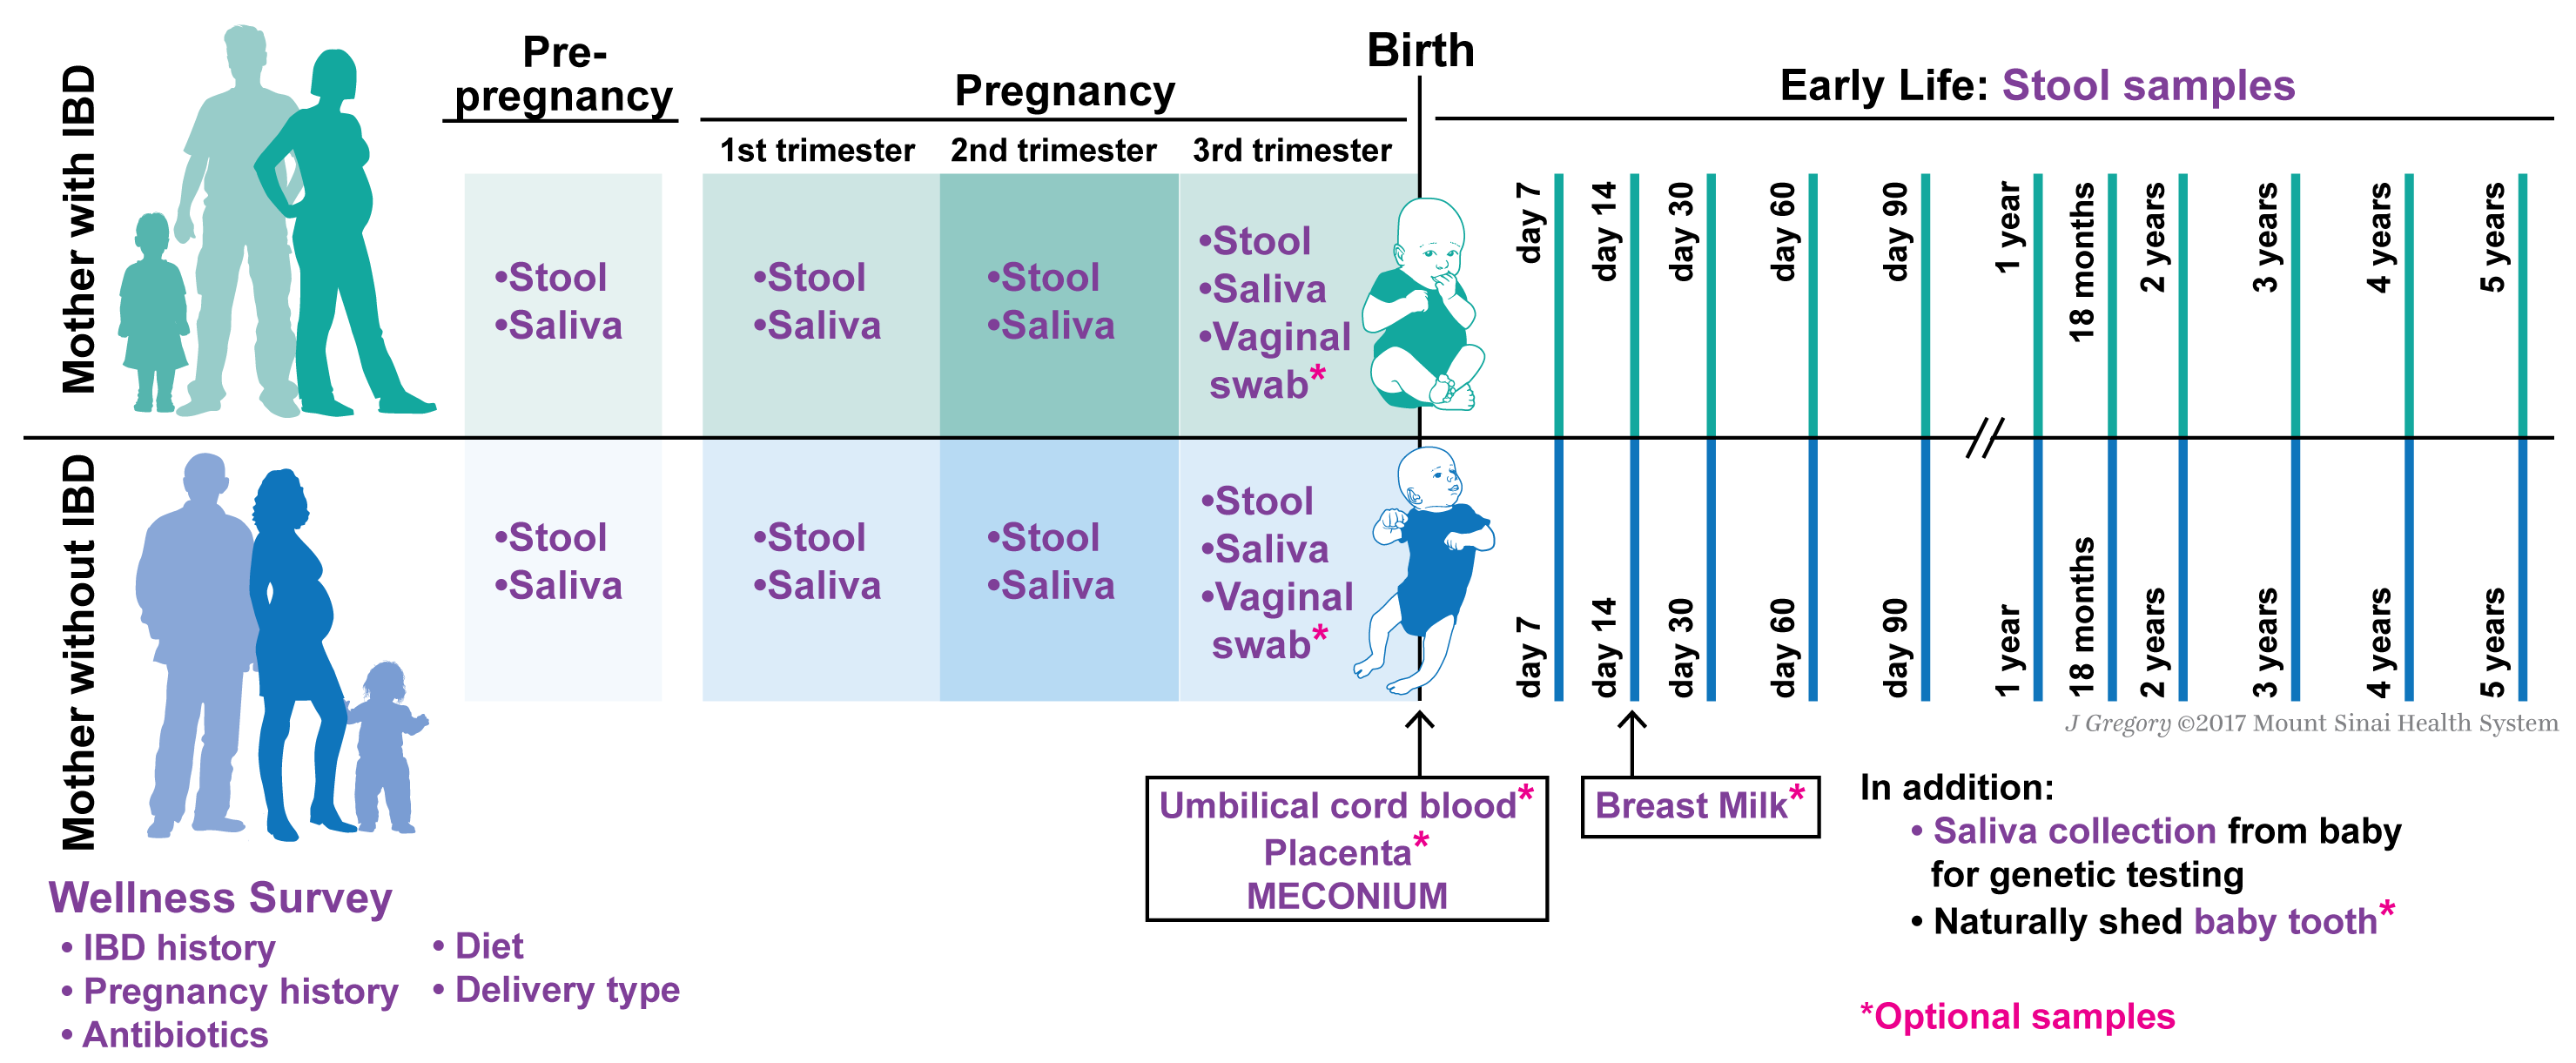 early pregnancies background of the study Background as maternal fever affects approximately 6–8% of early pregnancies, it is important to expand upon previous observations of an association between maternal fever and birth defects methods we analyzed data from the national birth defects prevention study, a multistate, case-control study of major structural birth defects.